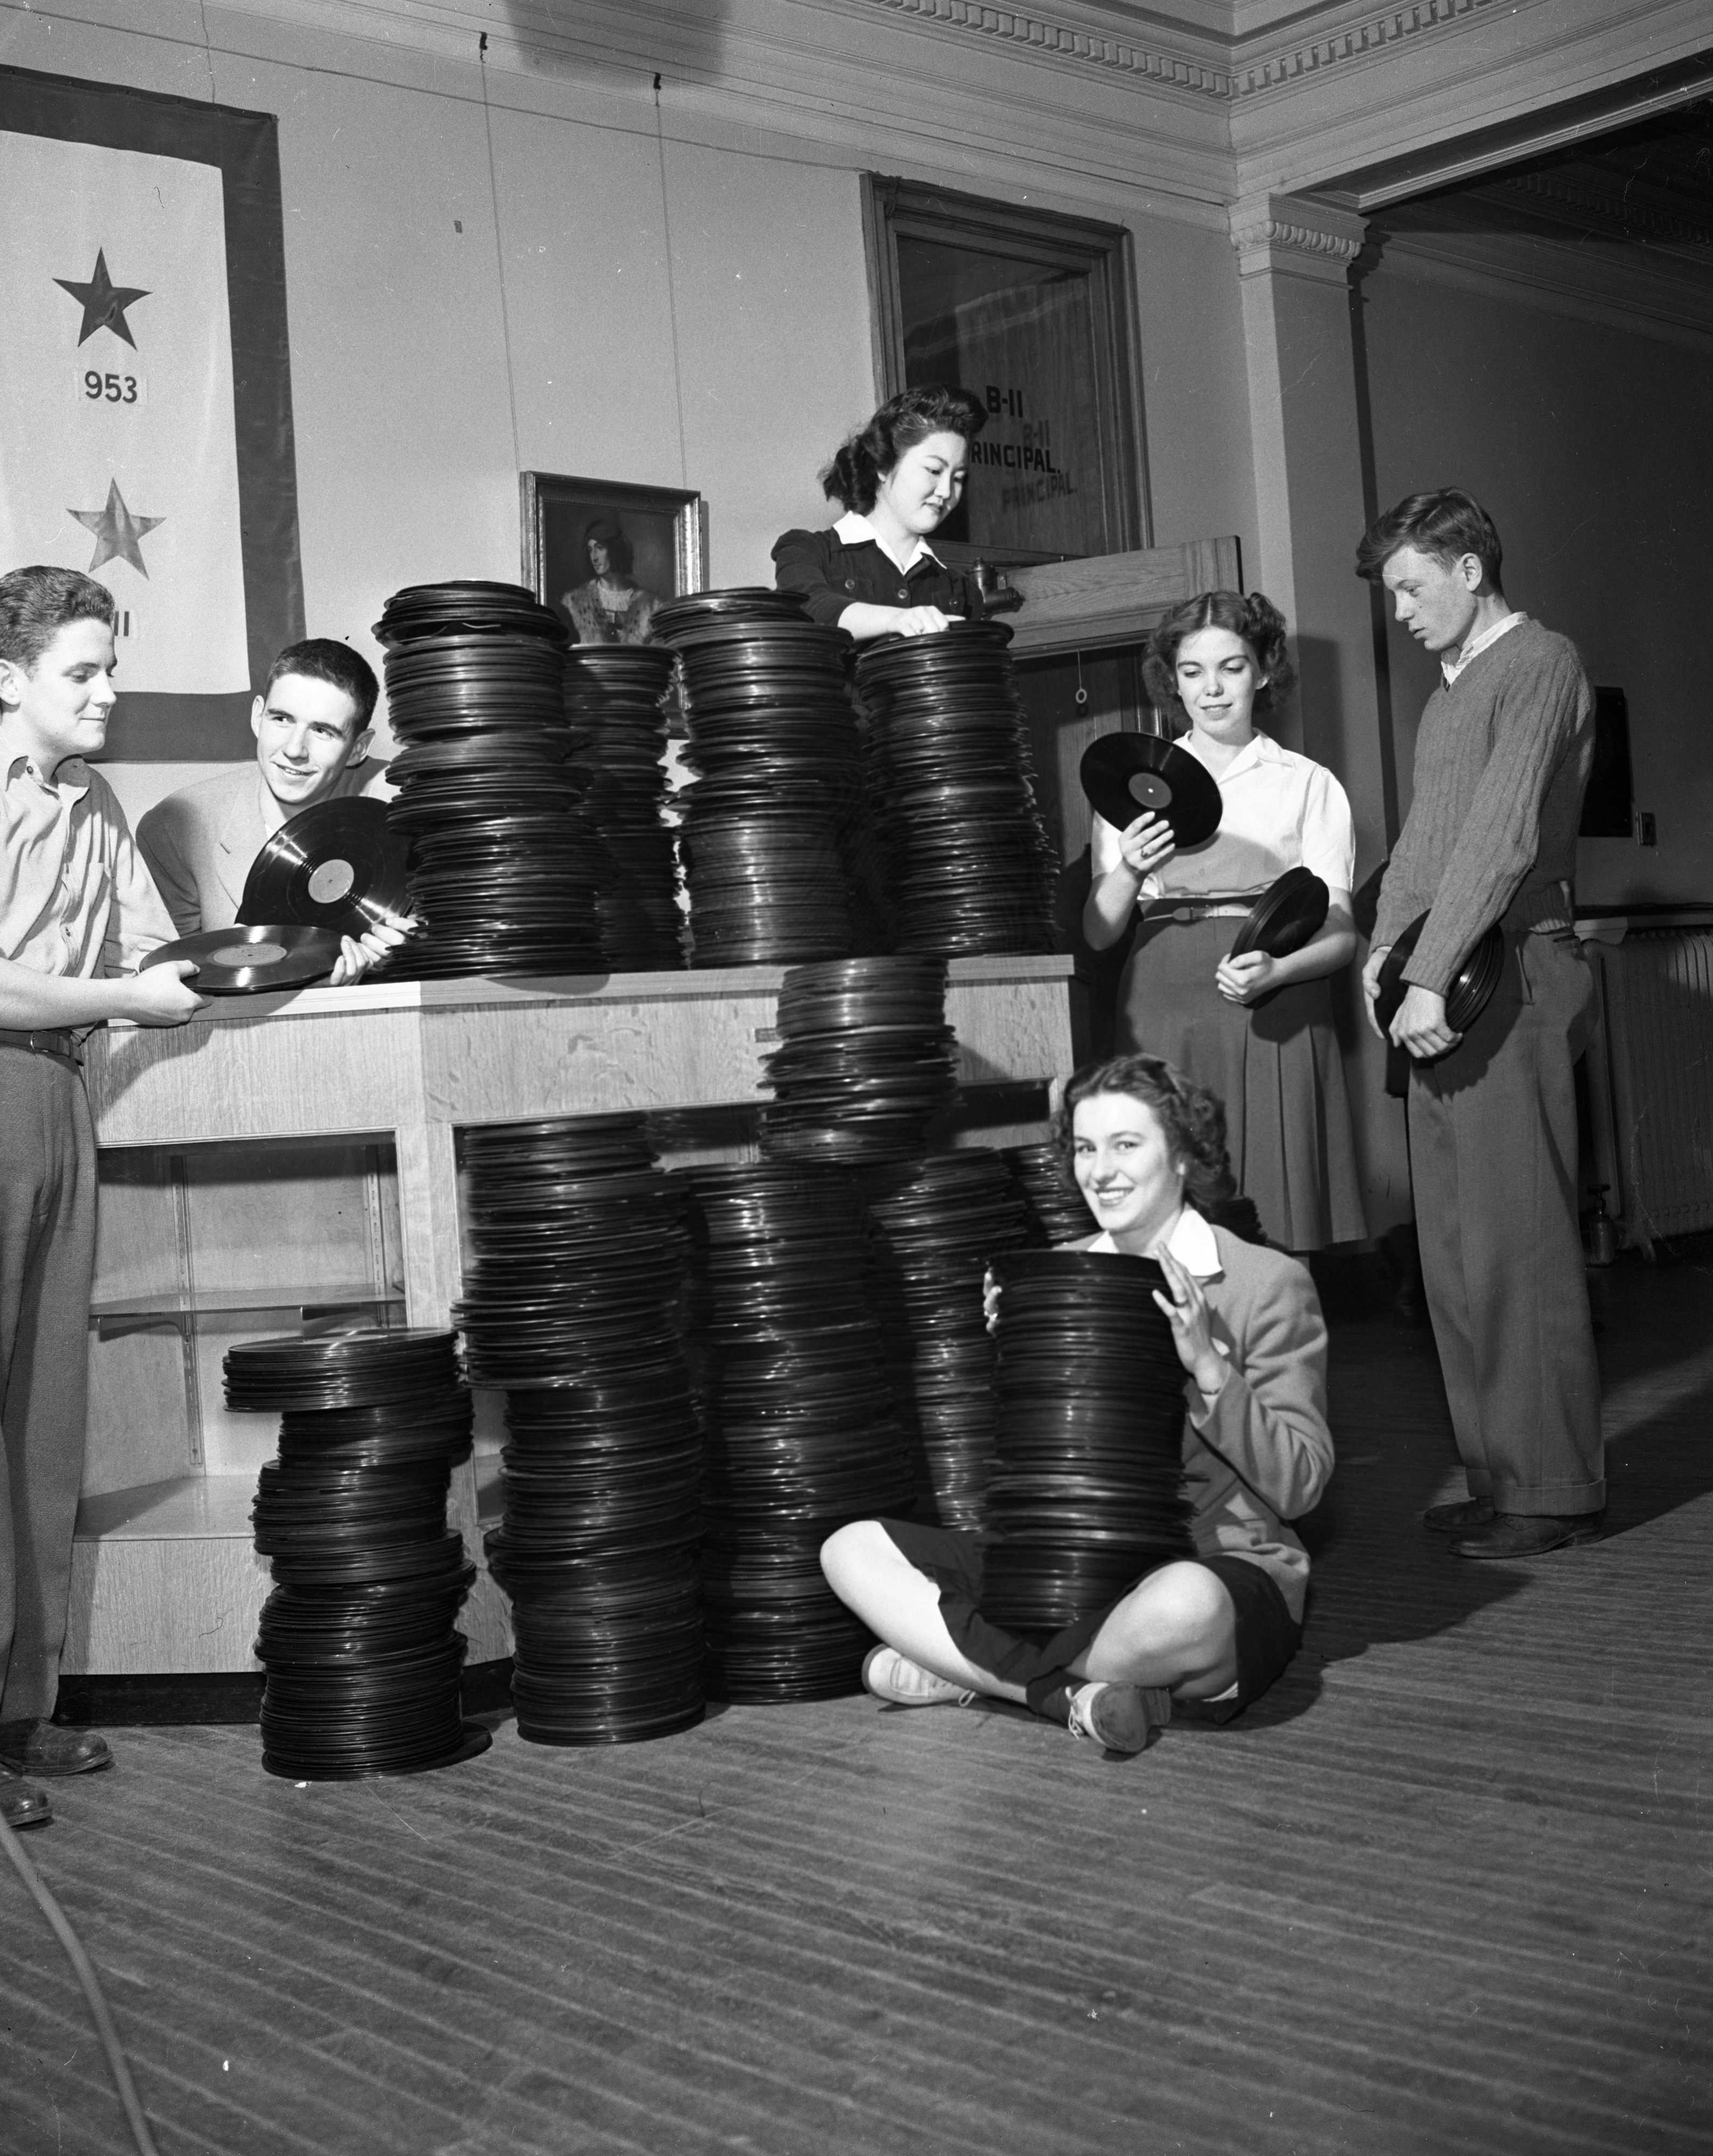 Ann Arbor High School students collect old phonograph records to melt down for new records, April 1944 image